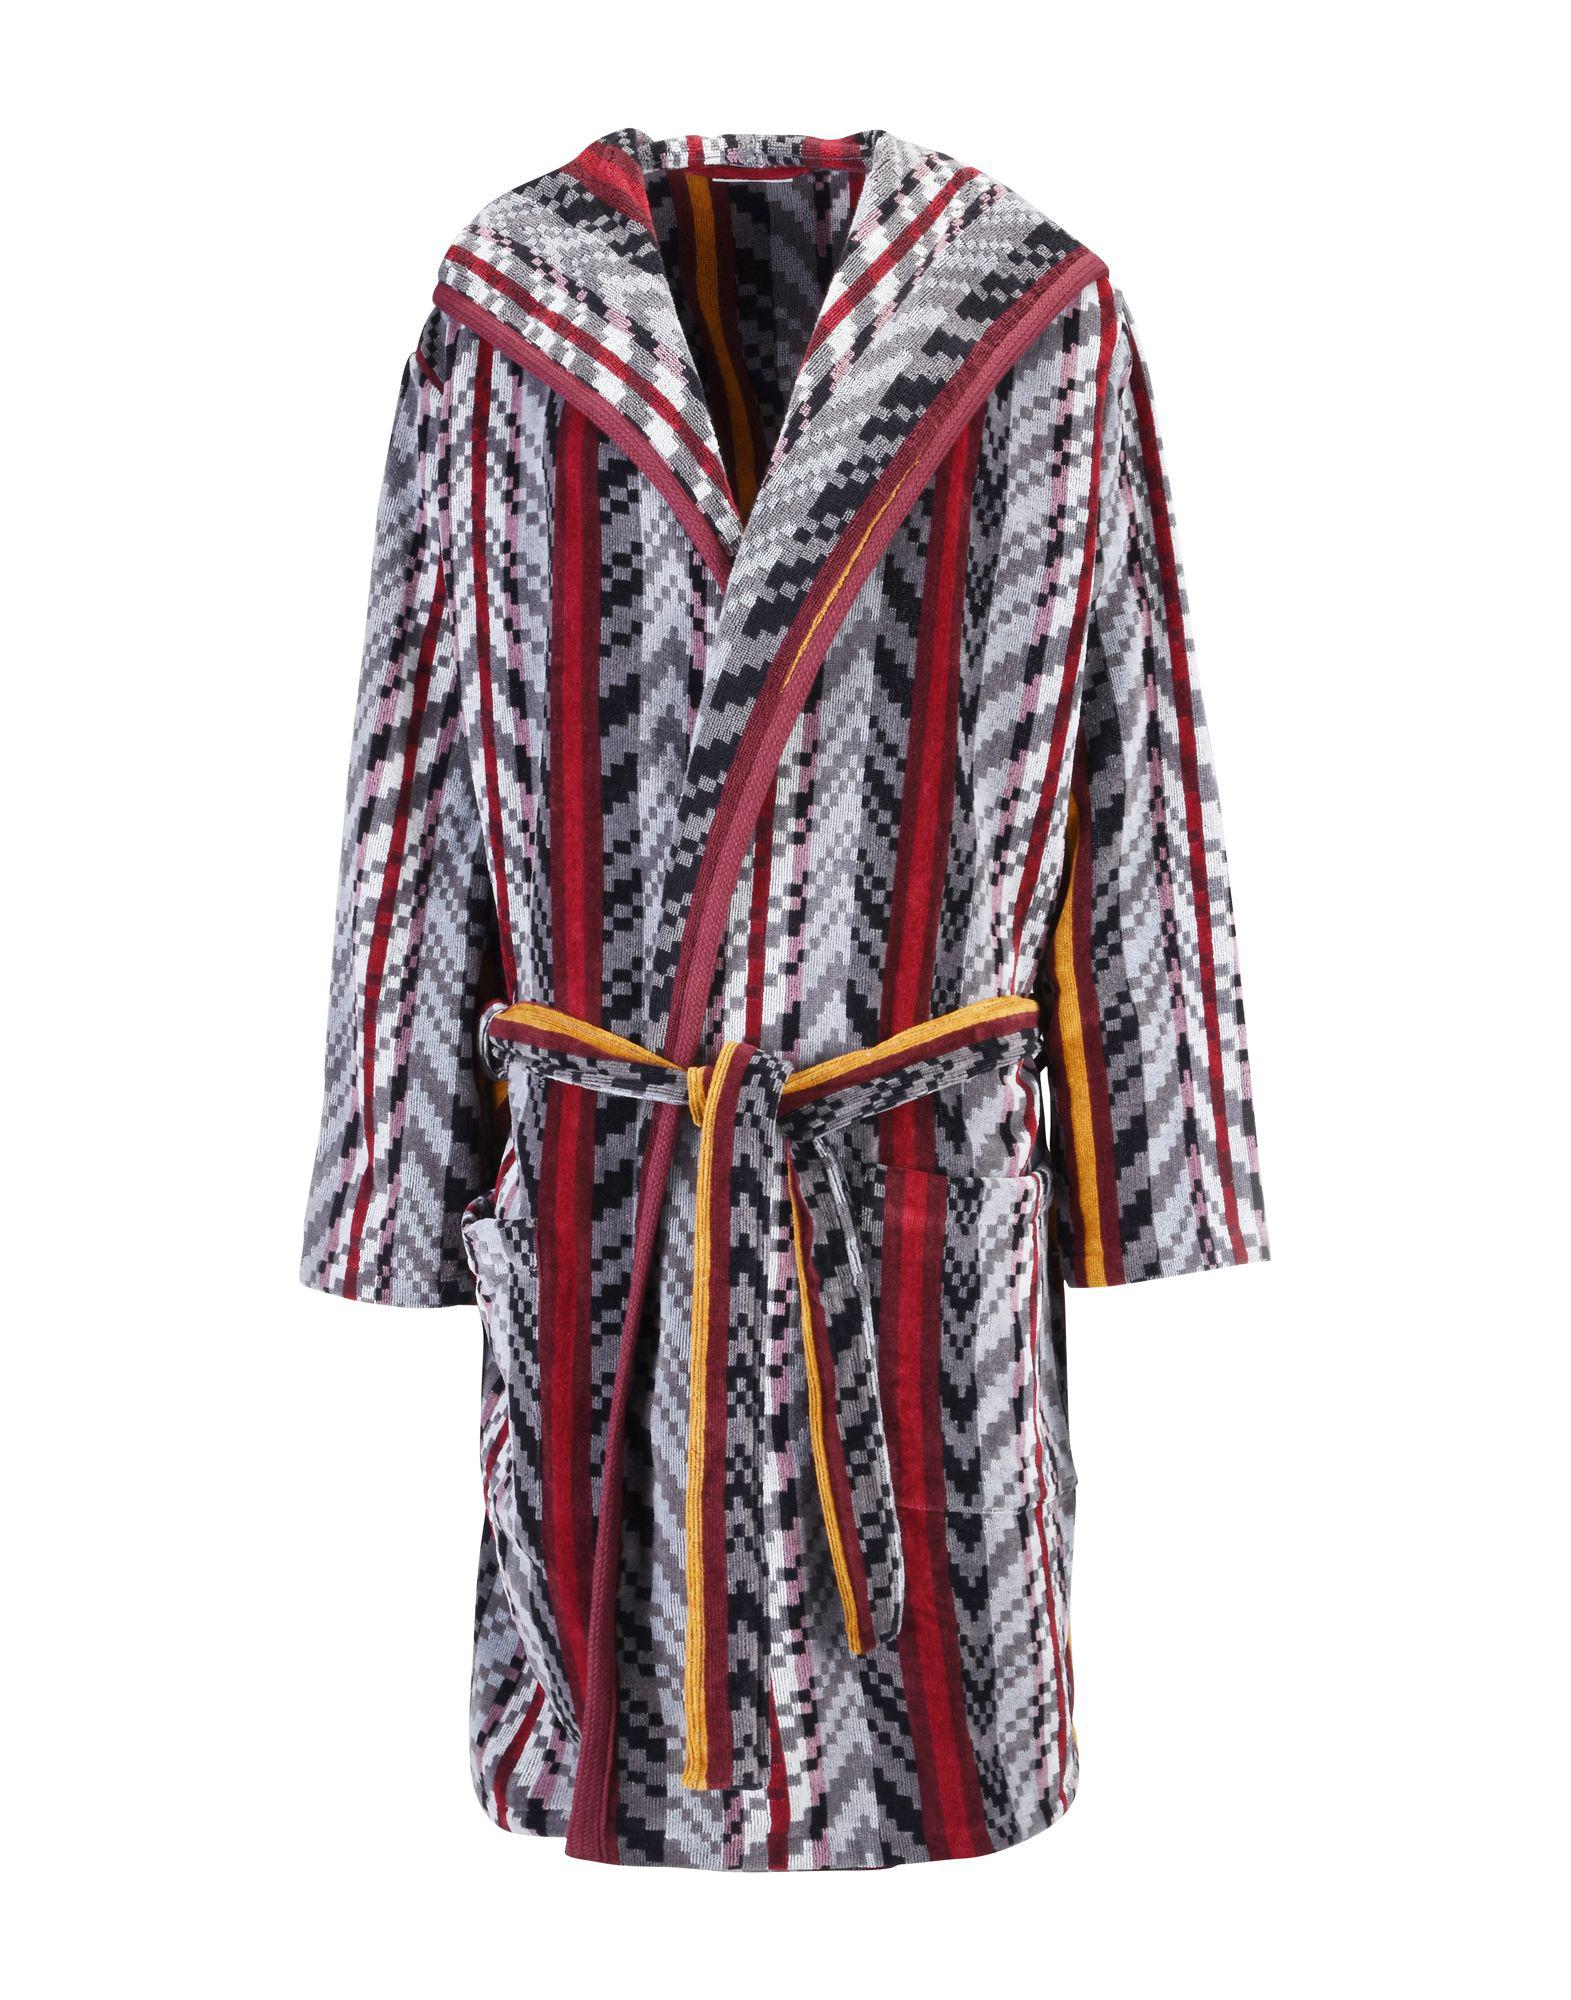 Kenzo Towelling Dressing Gown for Men - Lyst